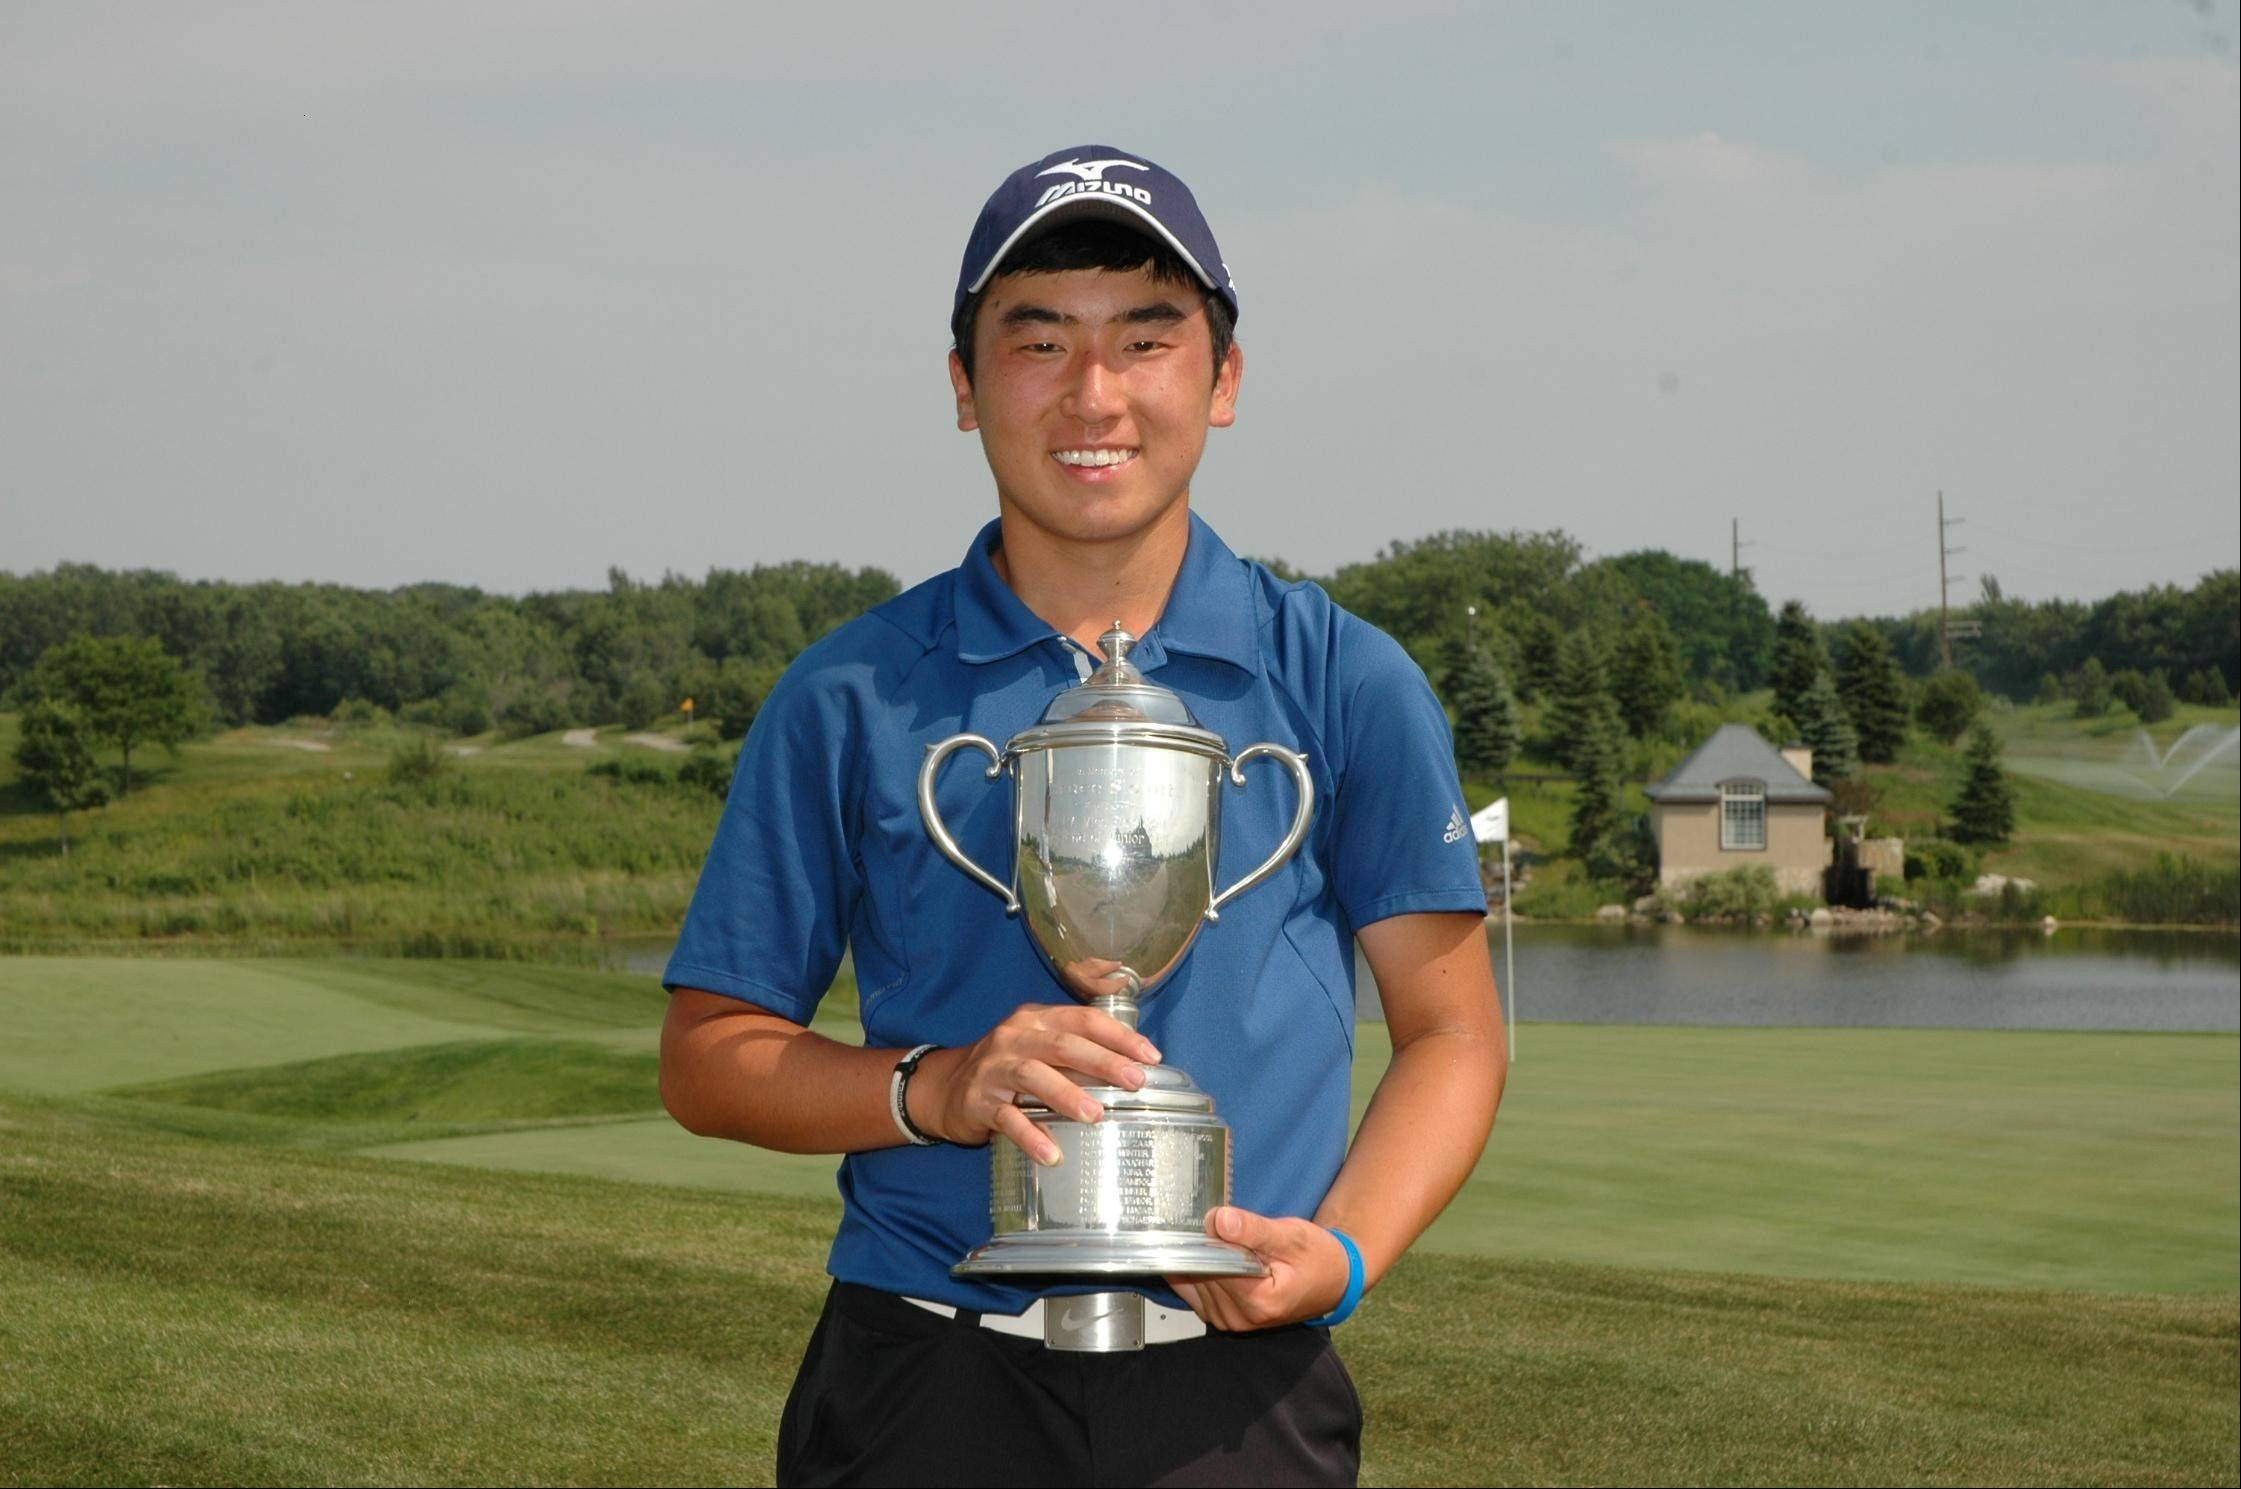 Doug Ghim, 15, of Arlington Heights, won the 42nd Illinois State Junior Amateur Championship in June at Makray Memorial Golf Club in Barrington.